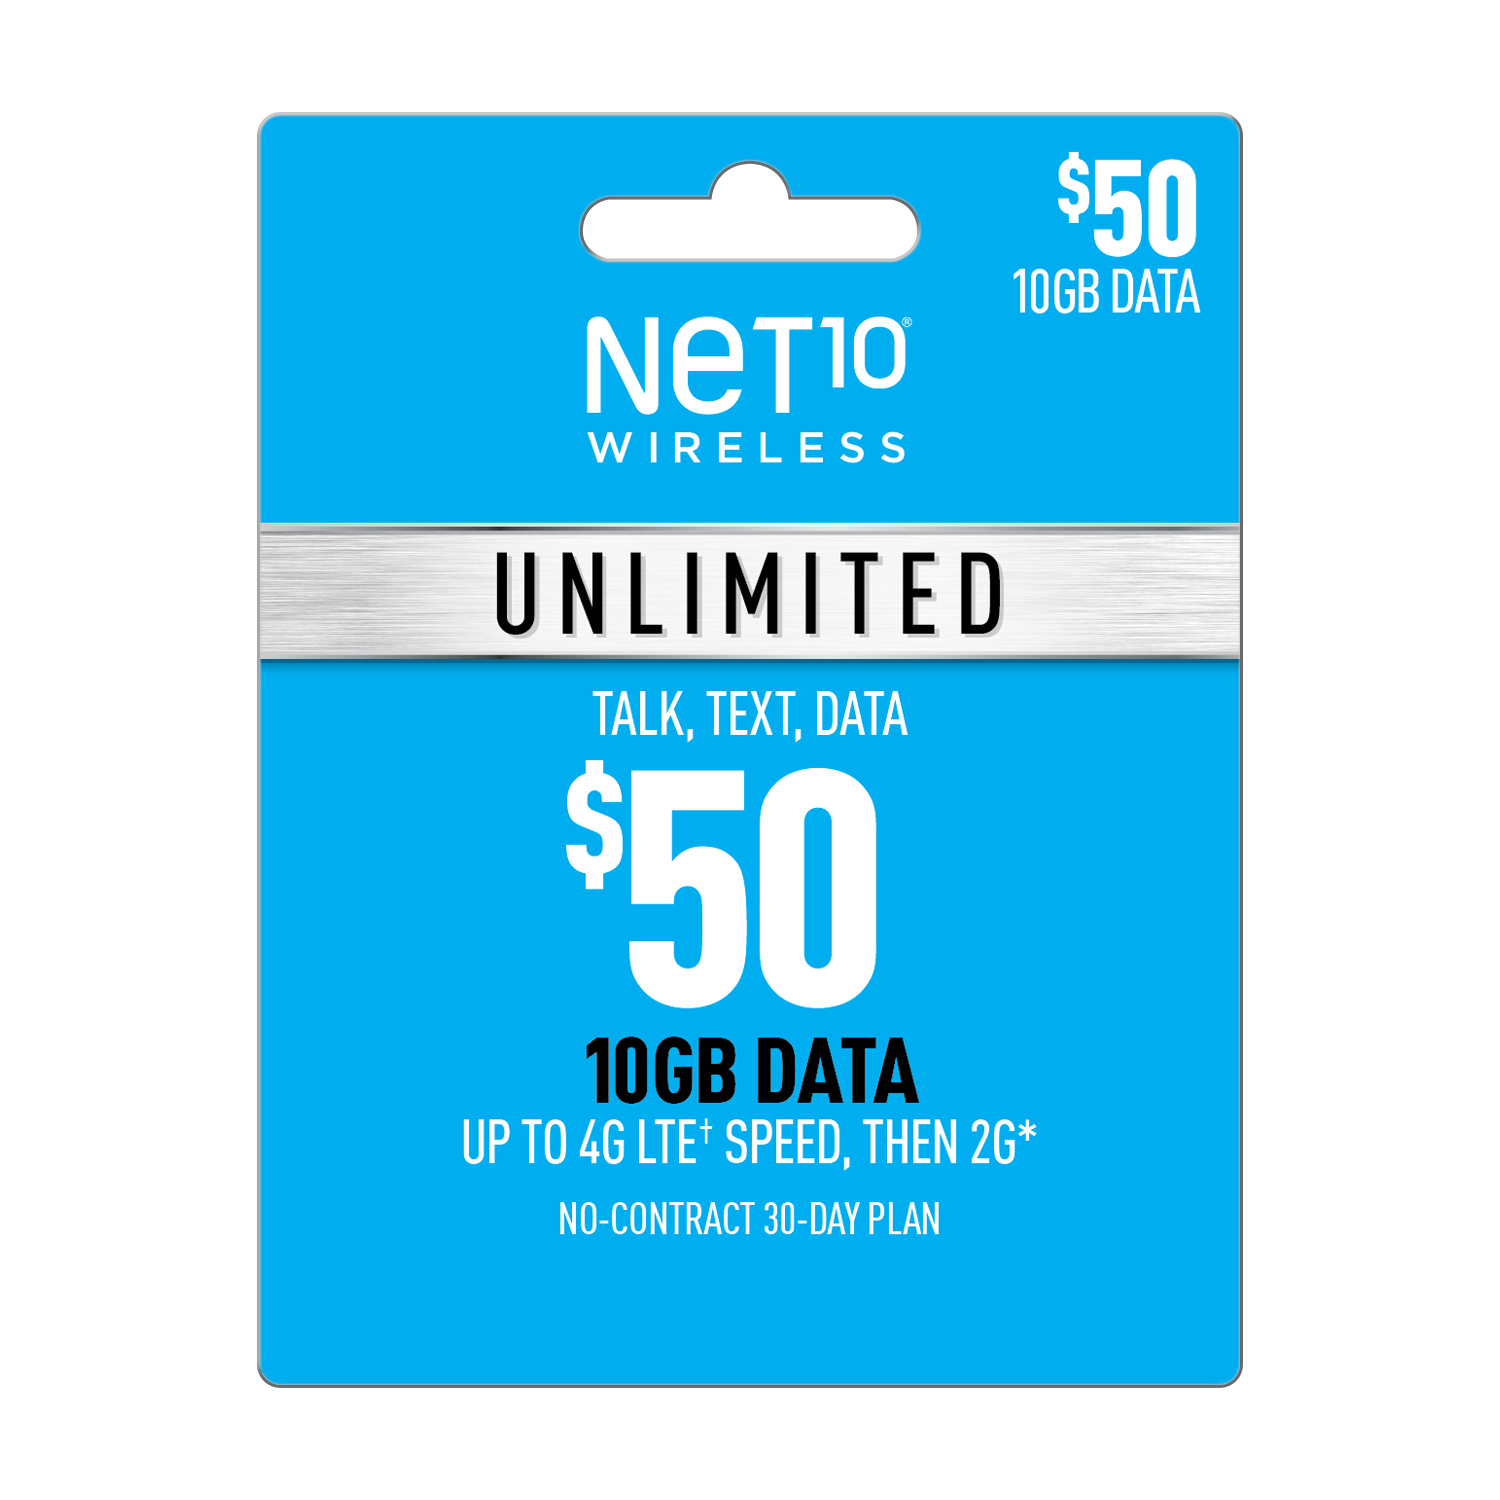 Net10 $50 Unlimited 30 Day Plan (10GB of data at high speed, then 2G*) (Email Delivery)